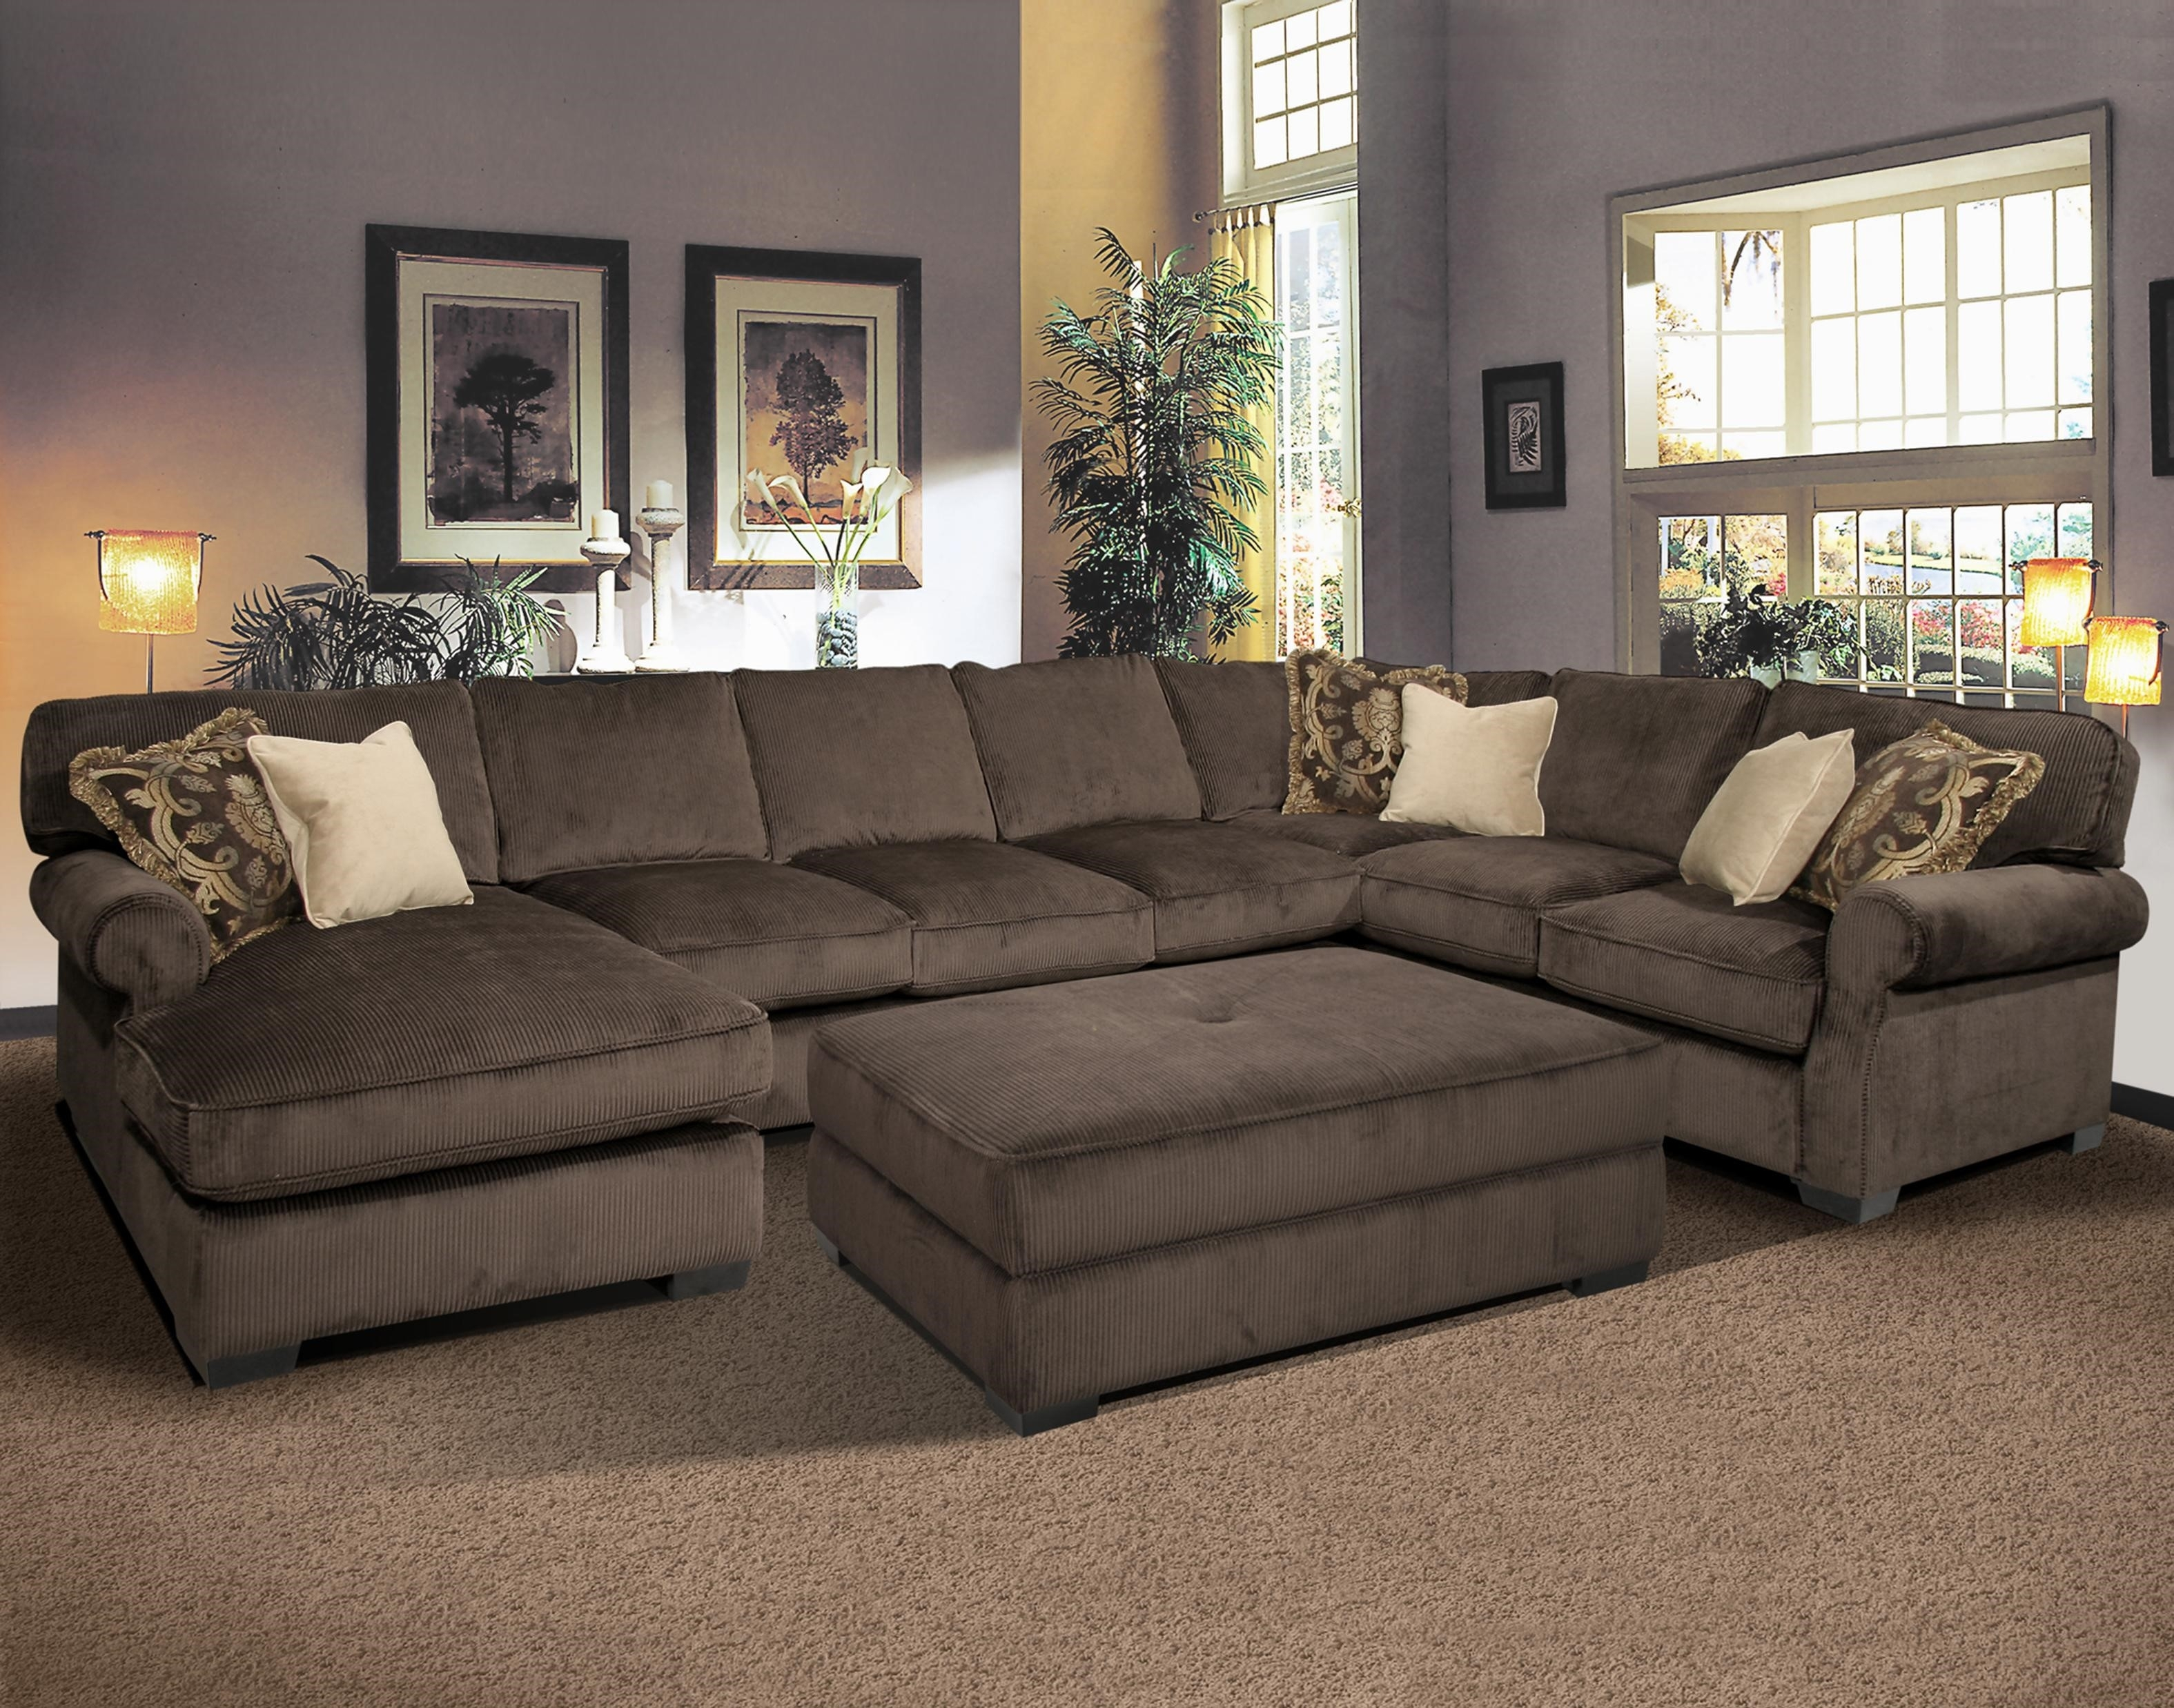 Cheap Sectional Sofas Houston Tx 55 With Cheap Sectional Sofas Within Sectional Sofas In Houston Tx (Image 3 of 10)